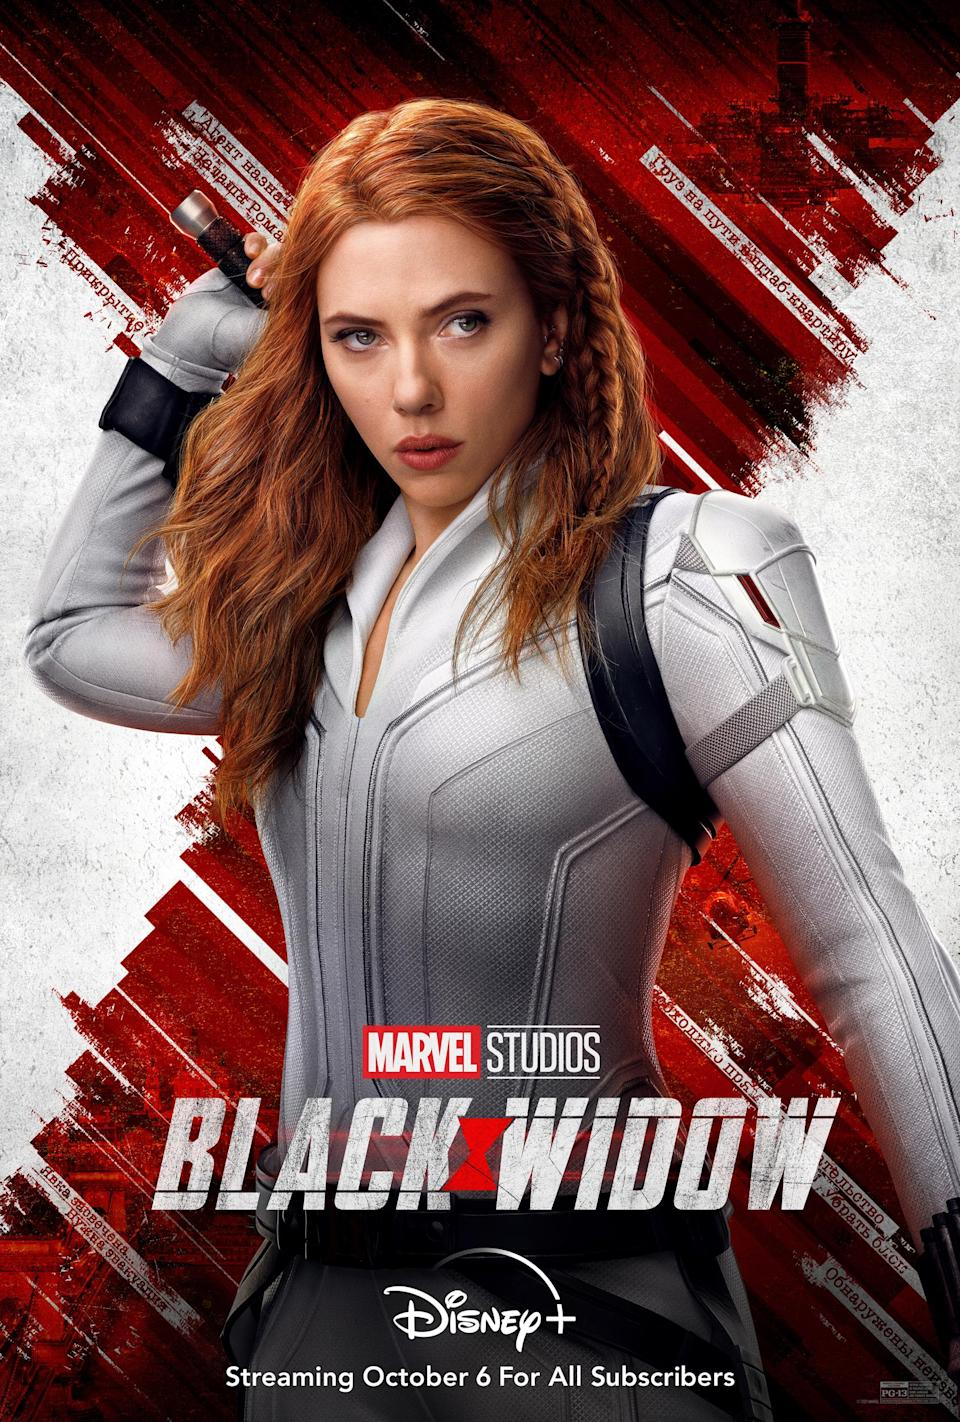 """Disney also released a new """"Black Widow"""" poster for the streaming date. - Credit: Disney Plus"""